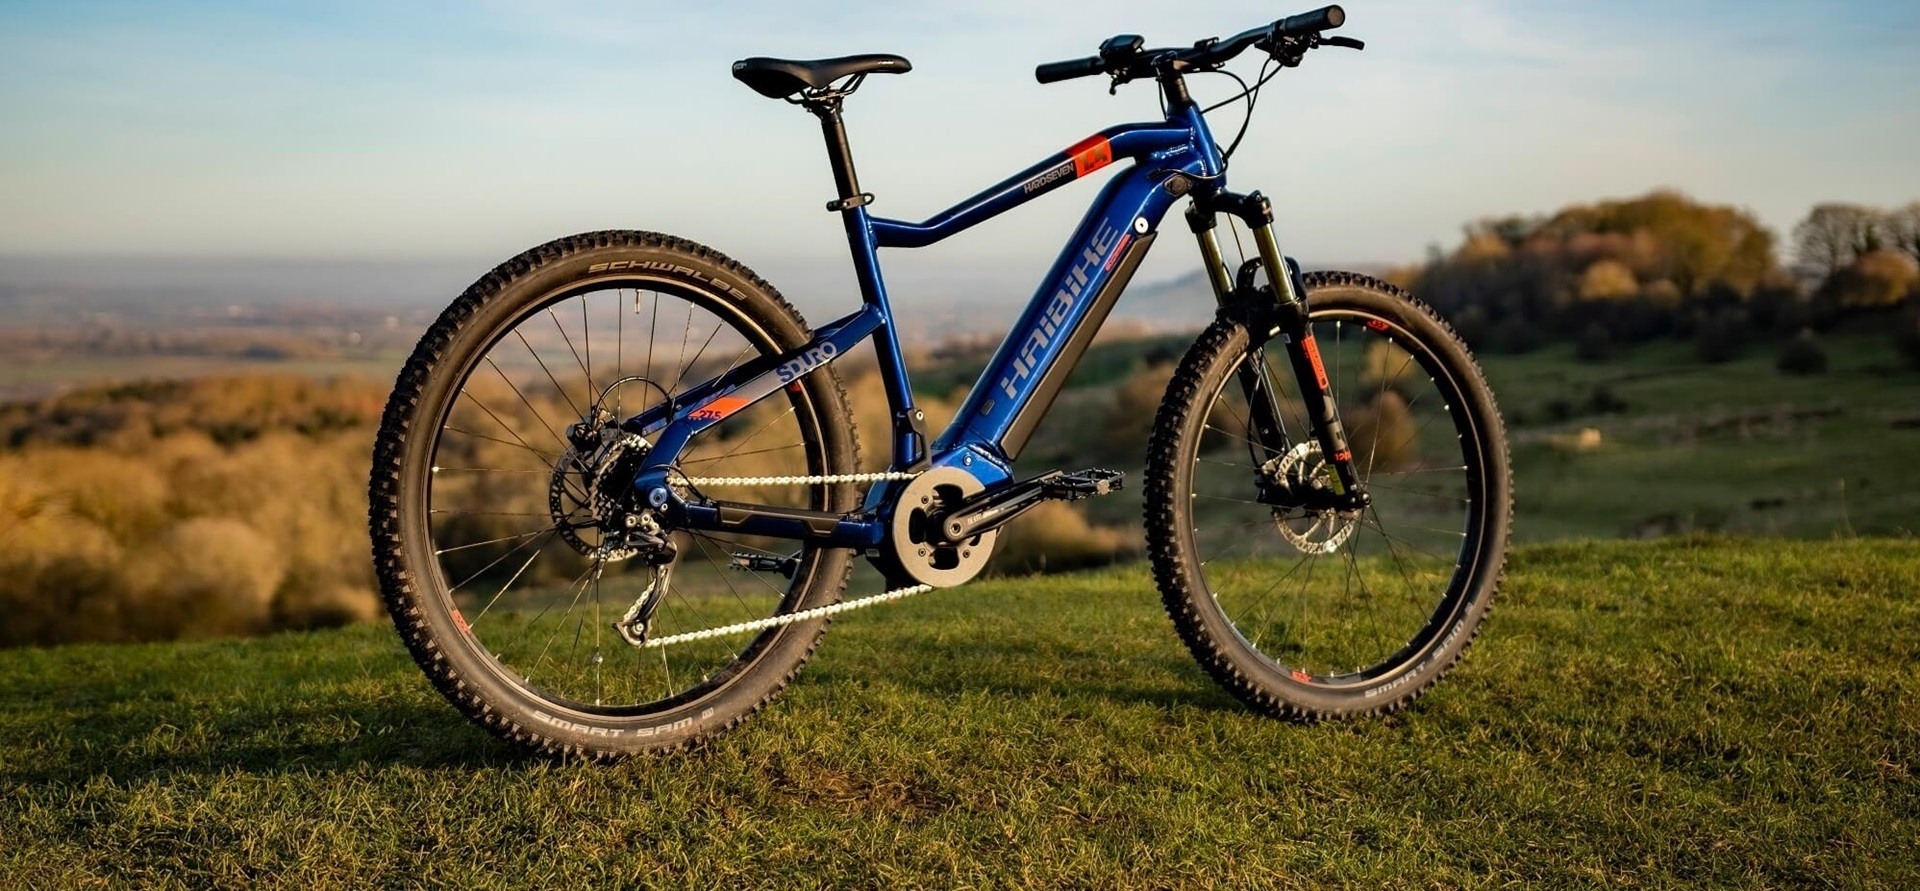 Haibike SDURO HardSeven 1.5 eMTB product shot in nature